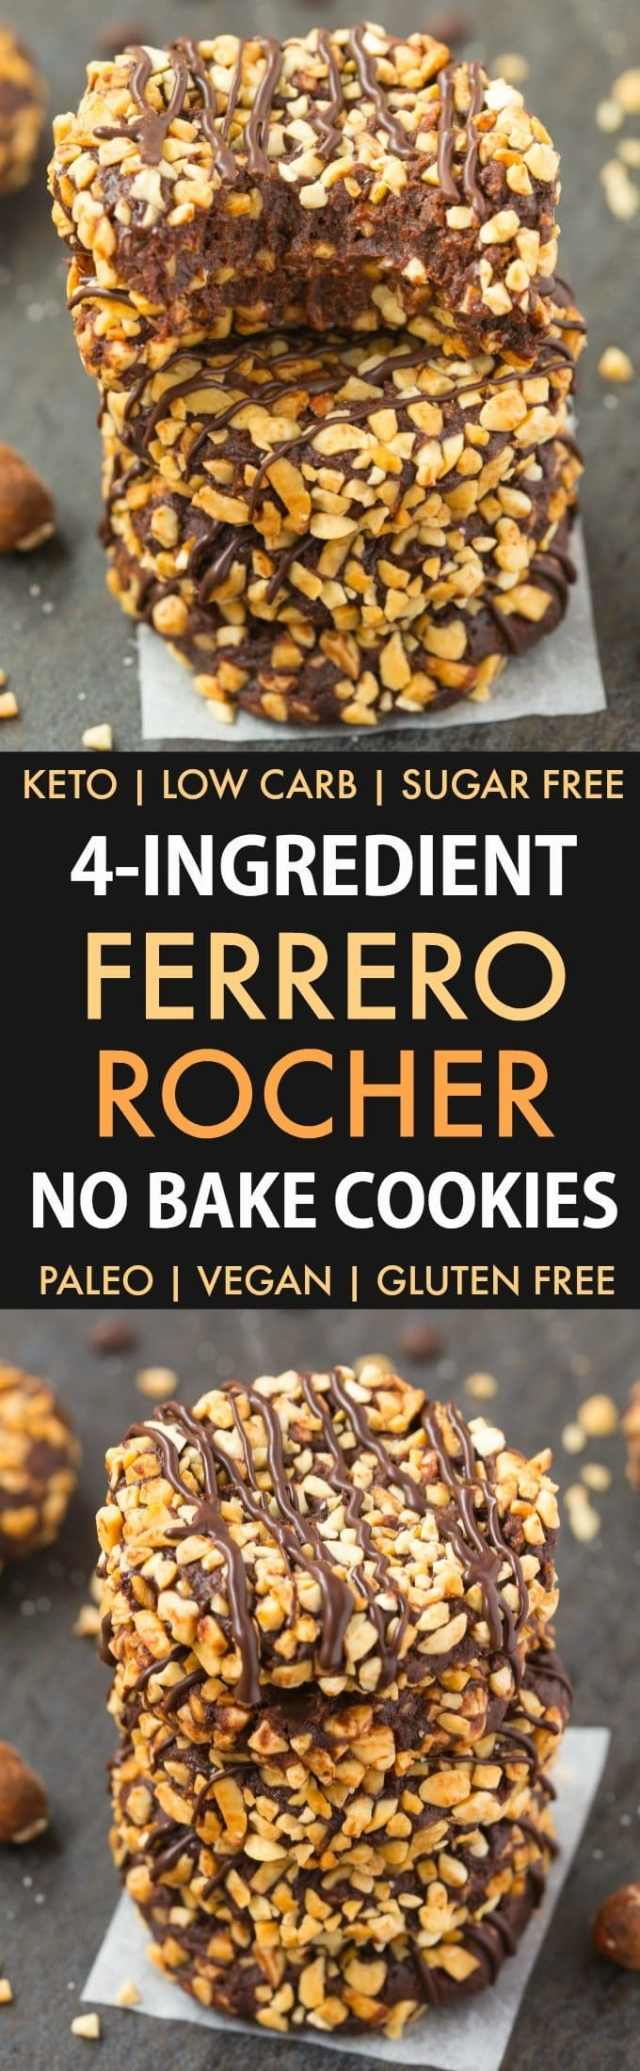 No Bake Paleo Vegan Chocolate Hazelnut Cookies without peanut butter and needing just 4 ingredients. Homemade 'Nutella' and coconut flour are used to make these fudgy cookies which taste like a Ferrero Rocher chocolate! Keto, Sugar Free, Low Carb.